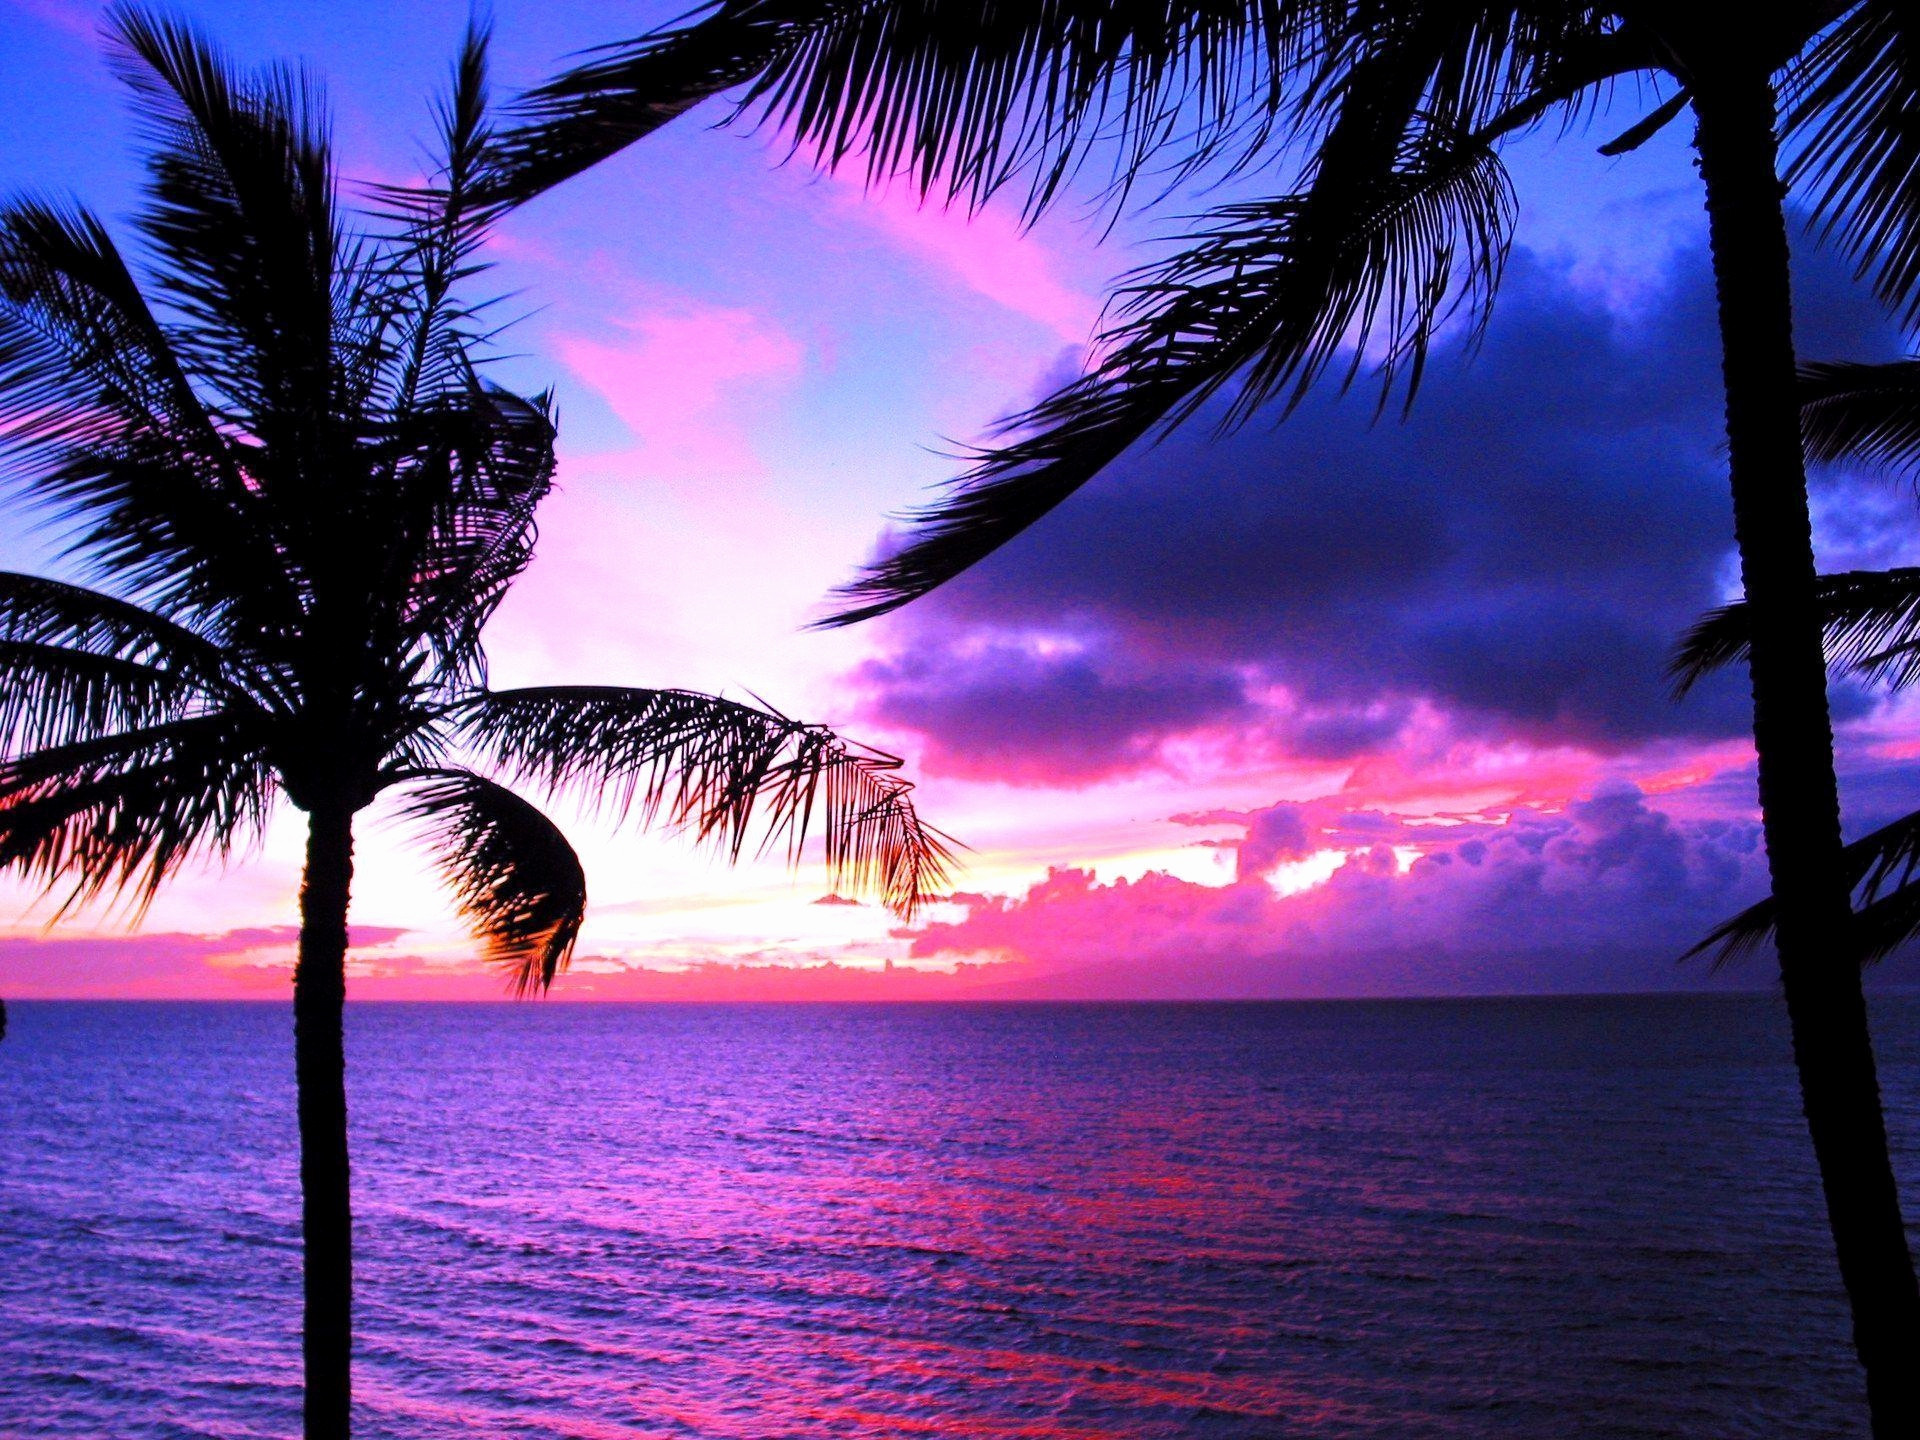 hawaiian beach background inspirational hawaii sunset wallpapers wallpaper cave of the day of hawaiian beach background